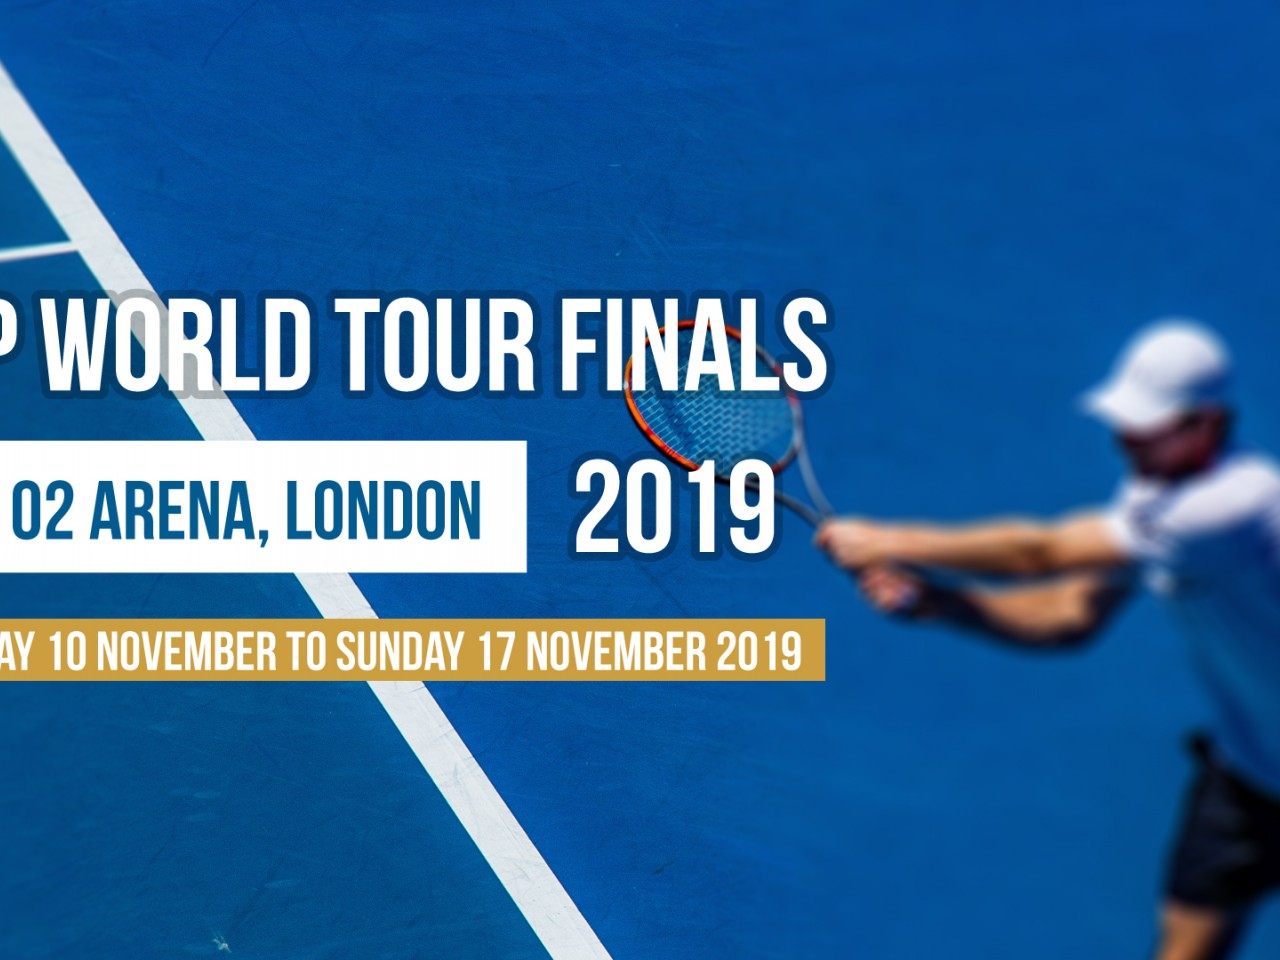 ATP World Tour Finals 2019